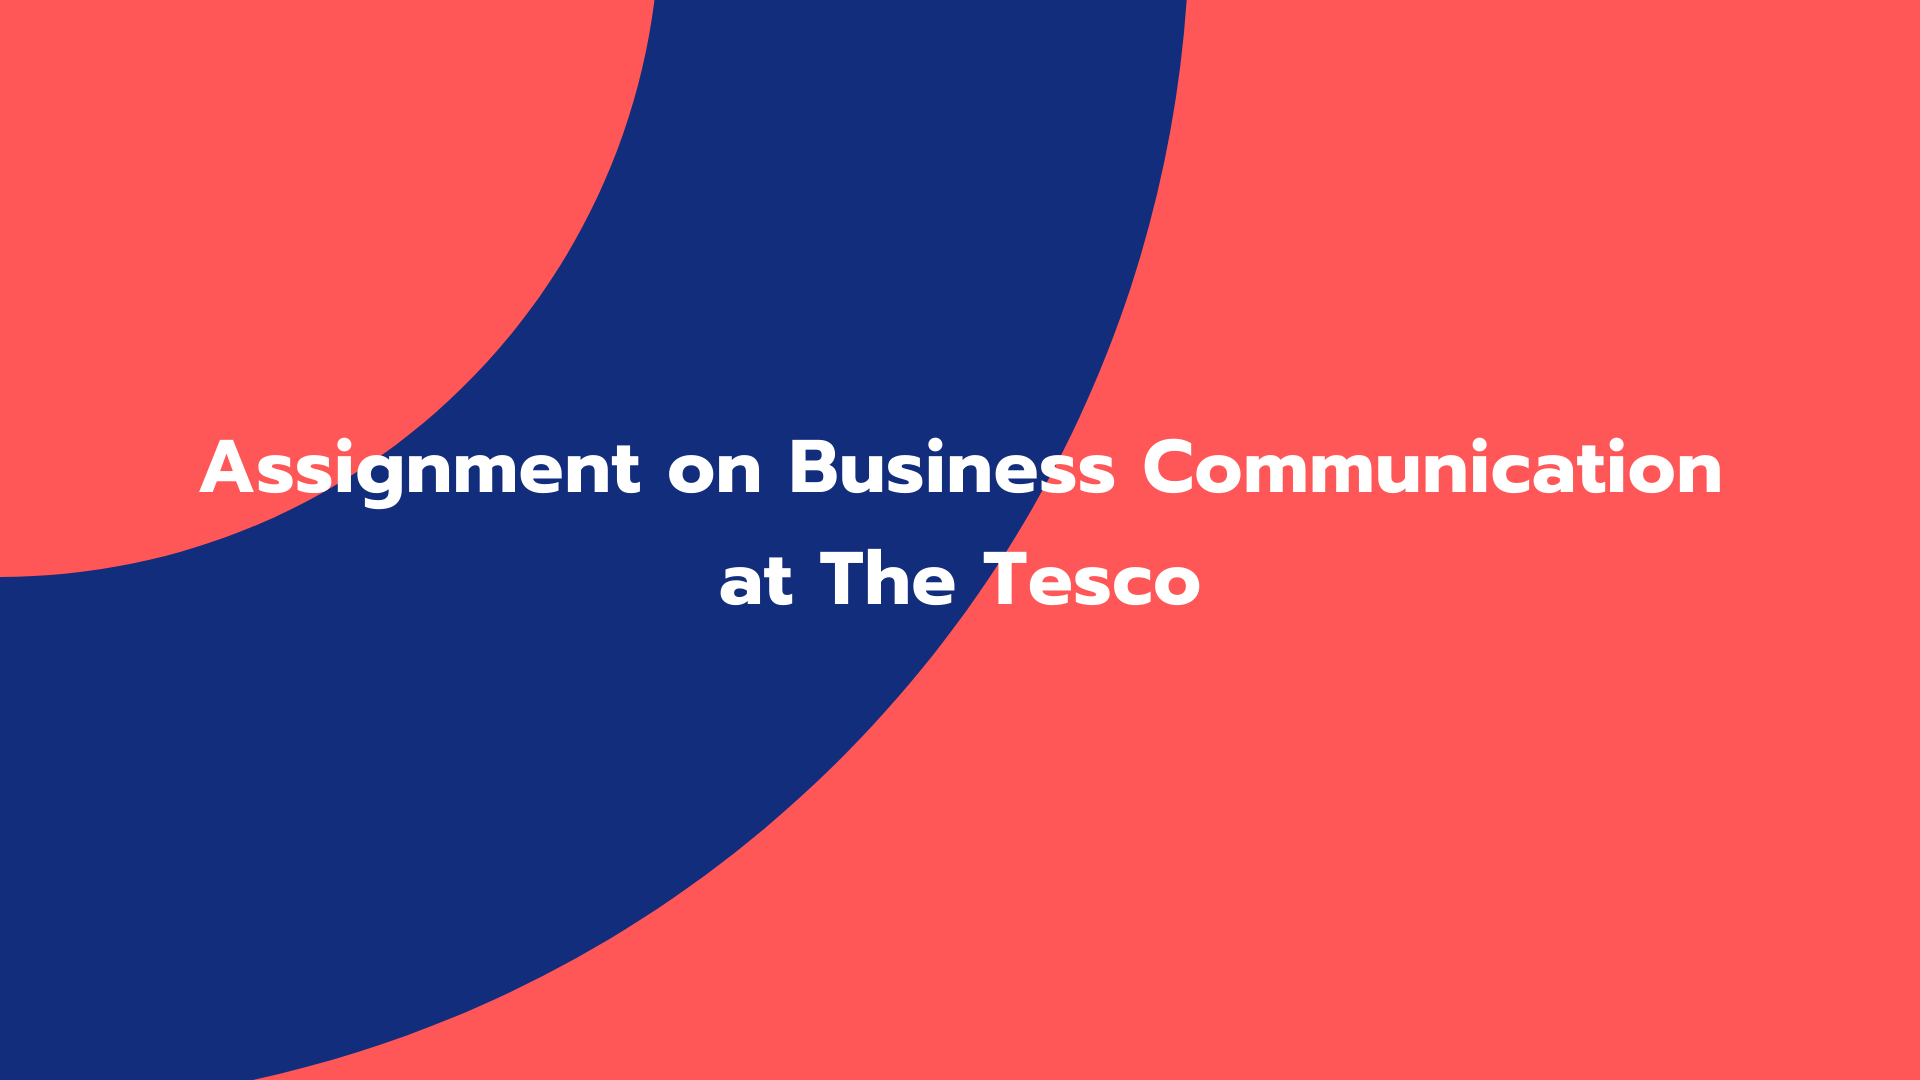 Assignment on The Business Communication at The Tesco